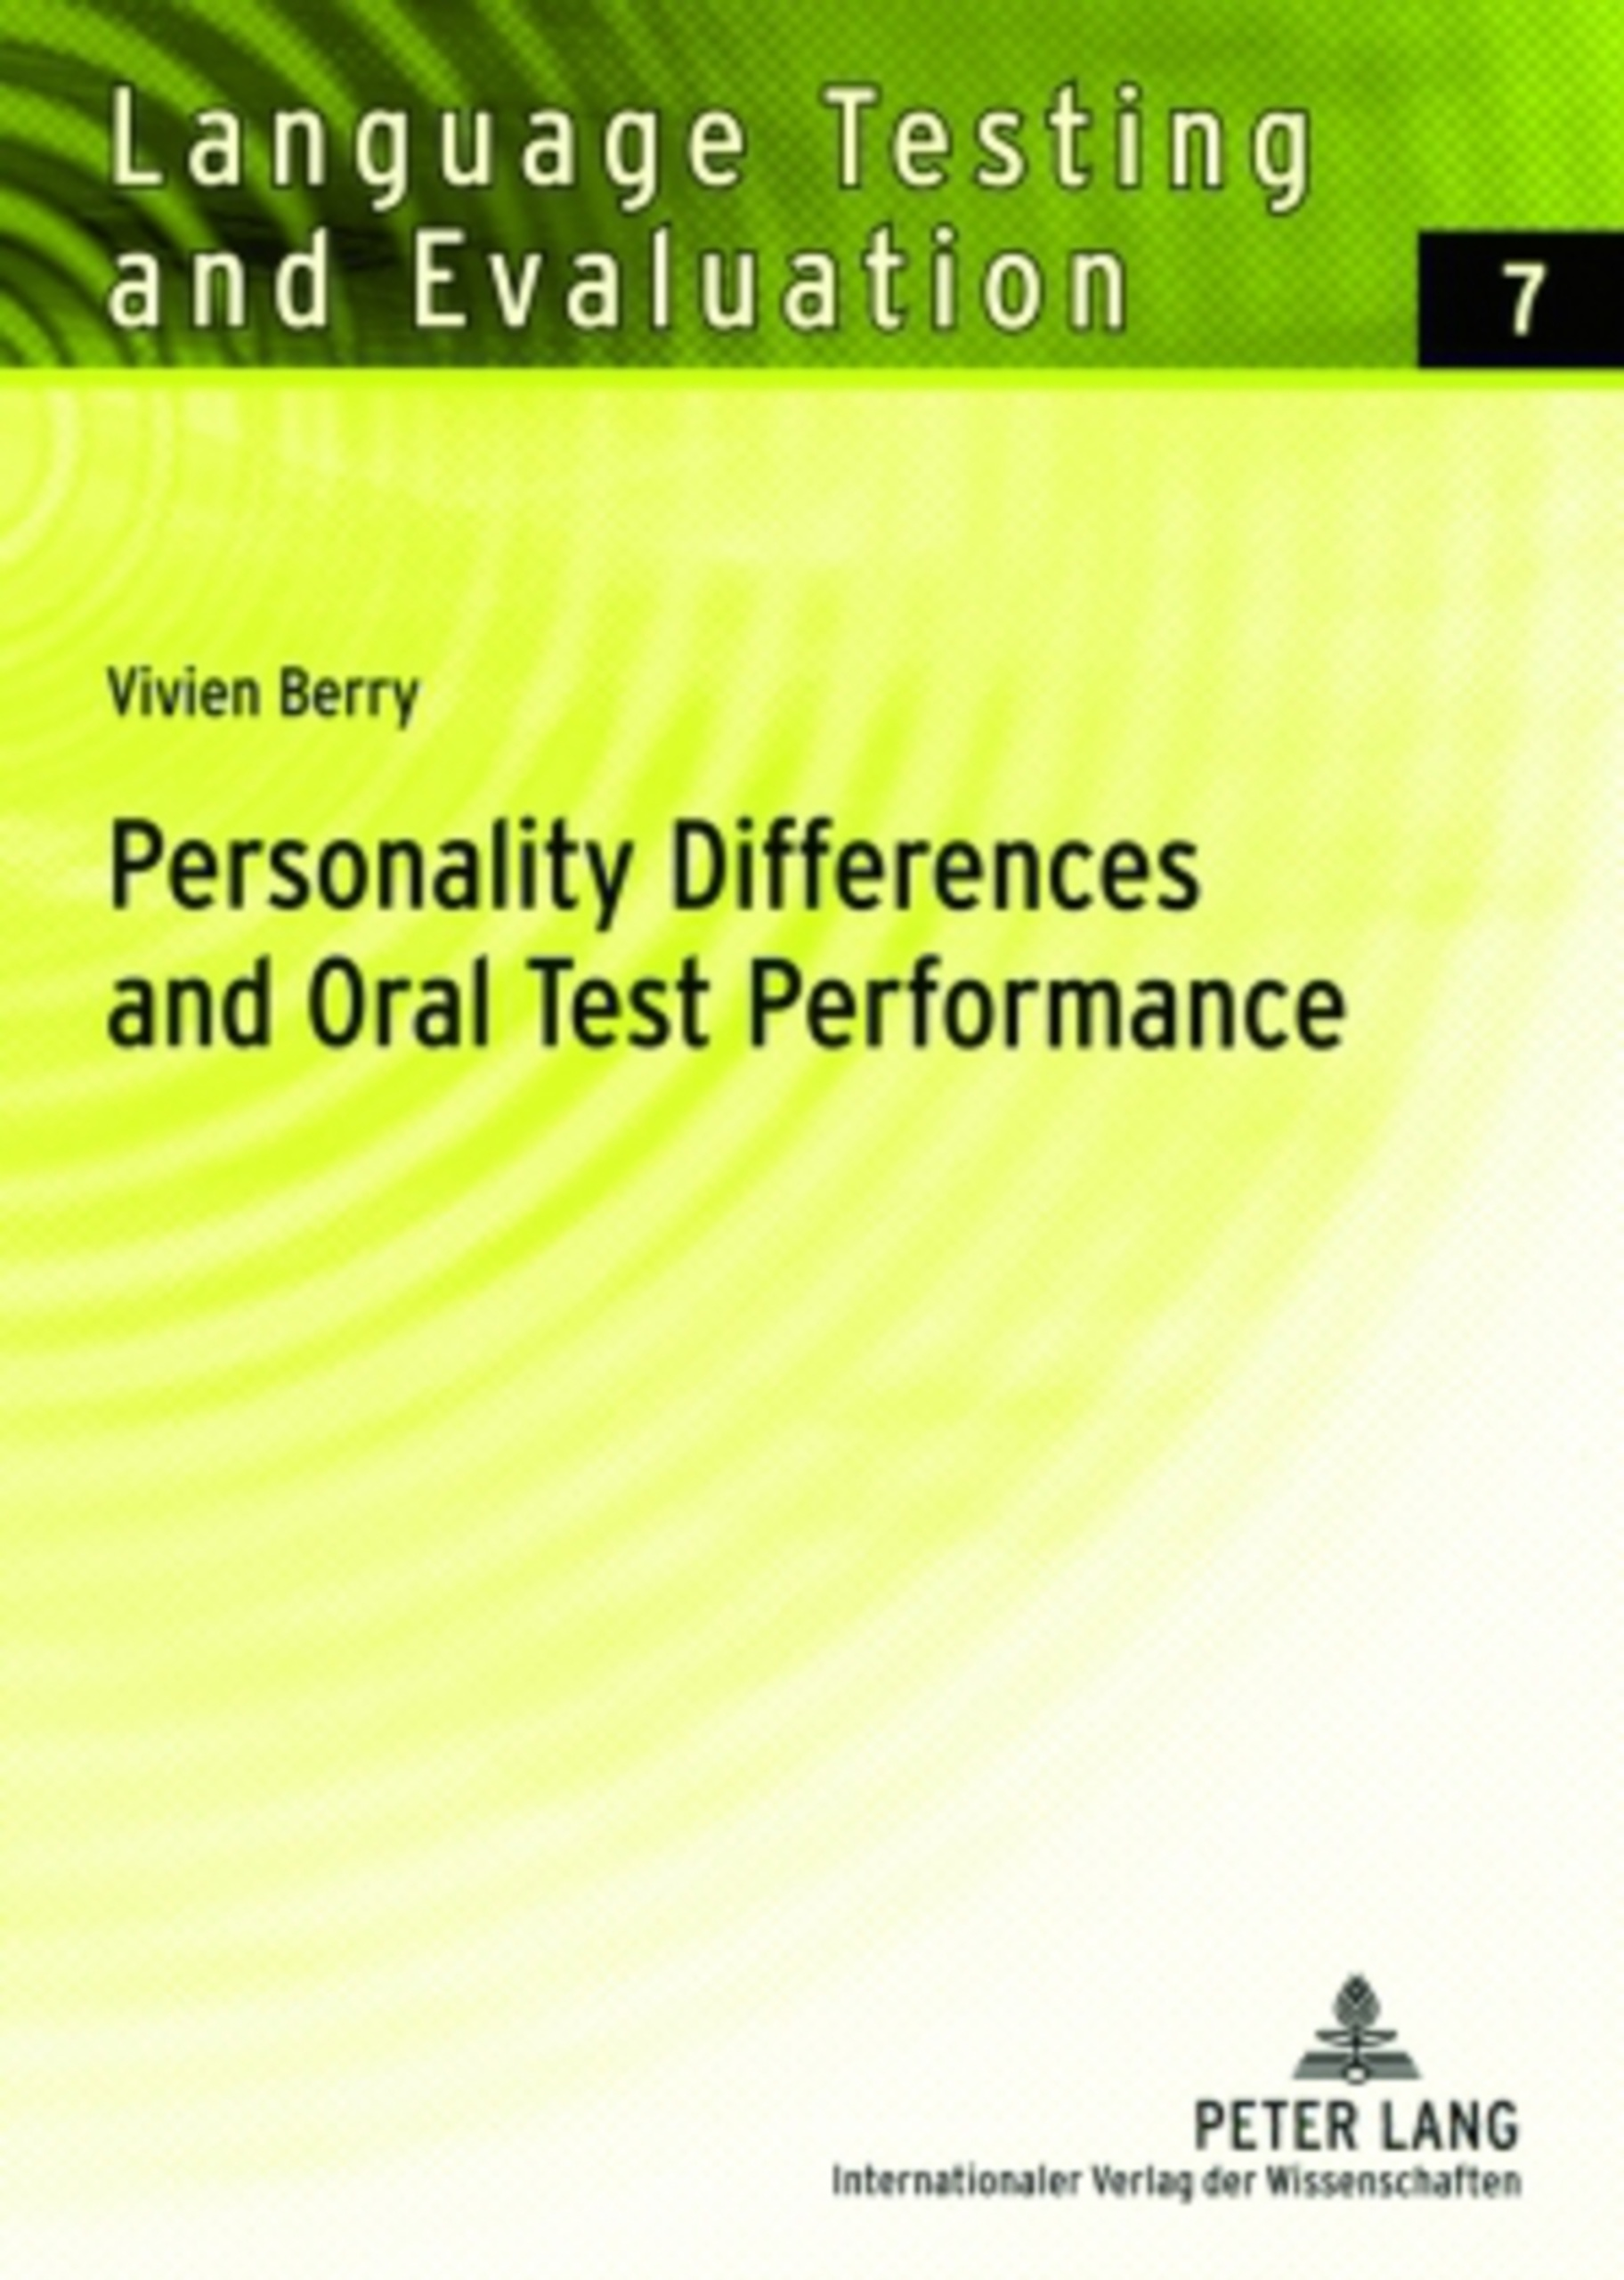 Title: Personality Differences and Oral Test Performance